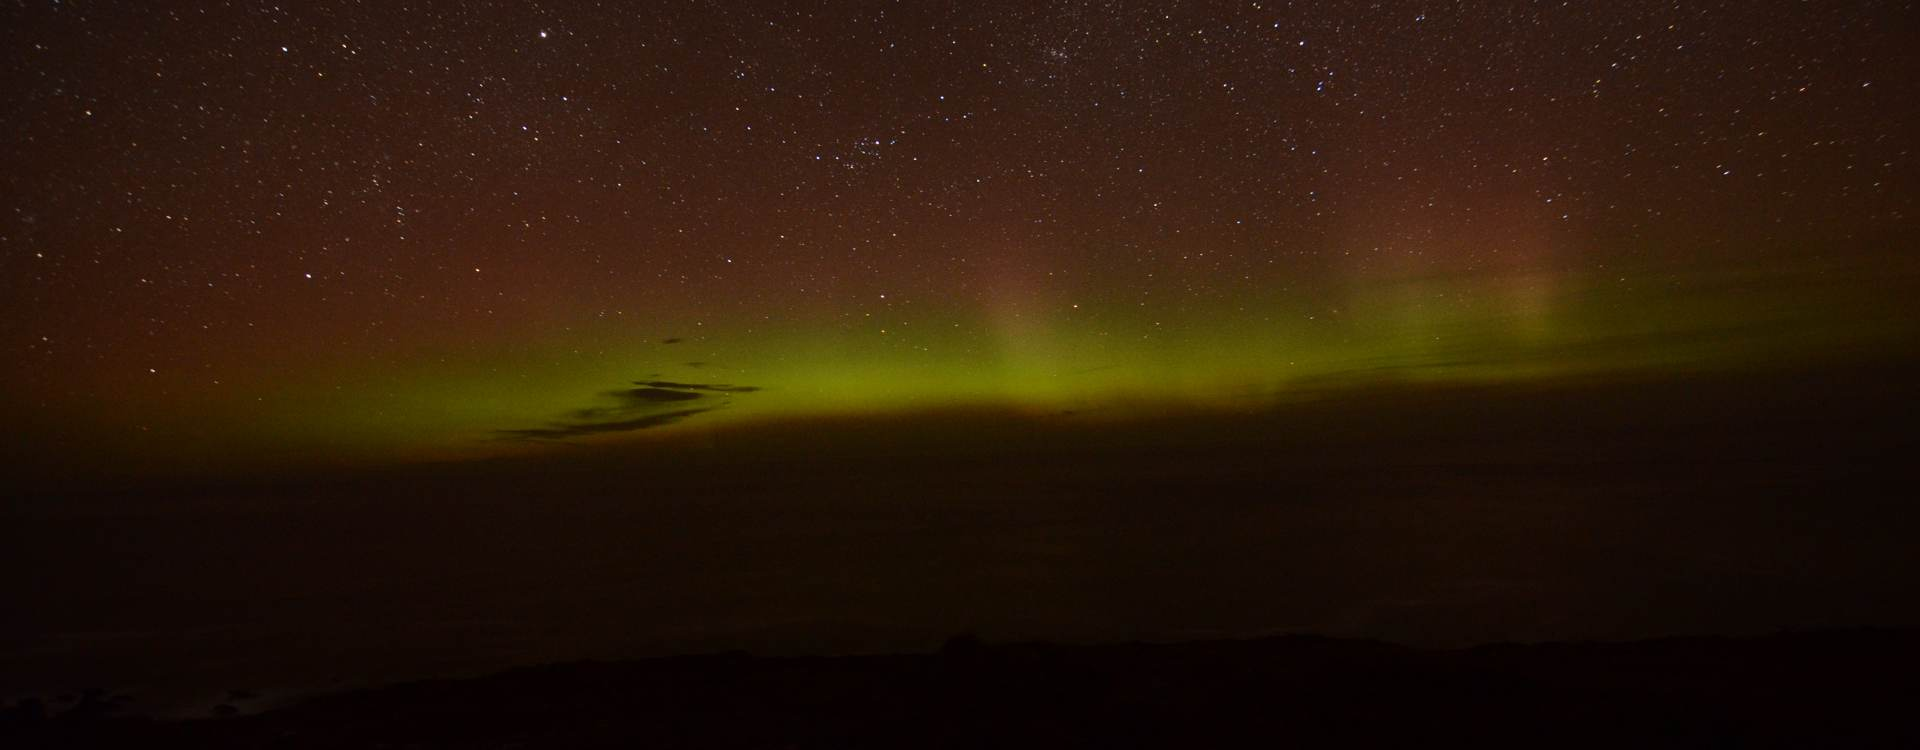 Northern Lights over Malin Head